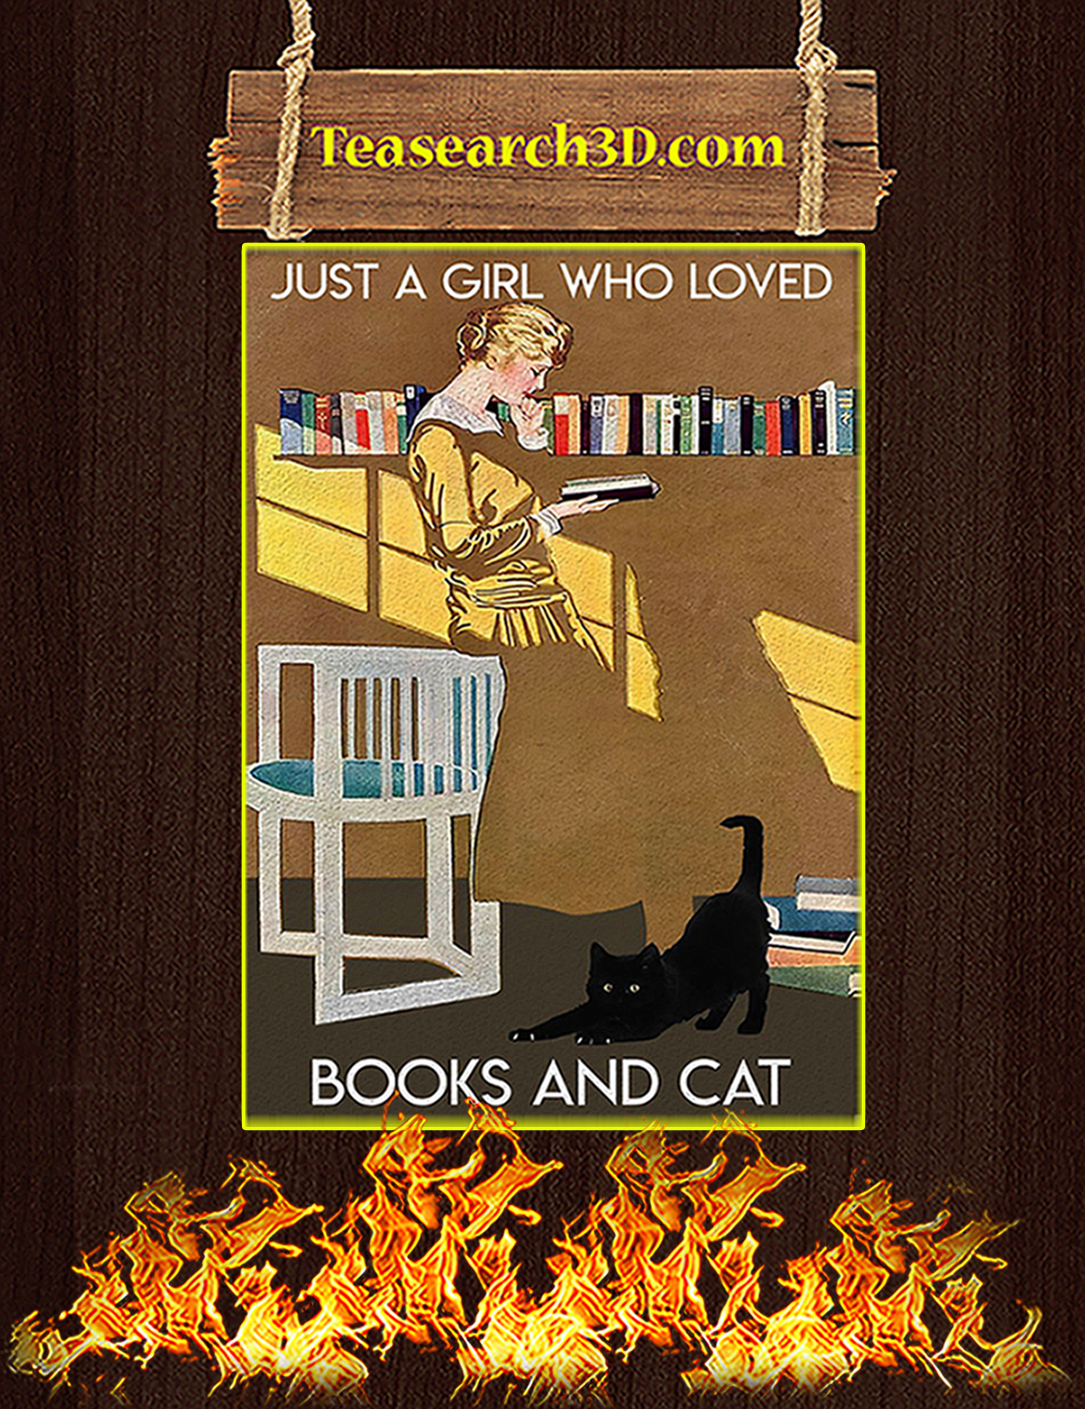 Just a girl who loved books and cat poster A2